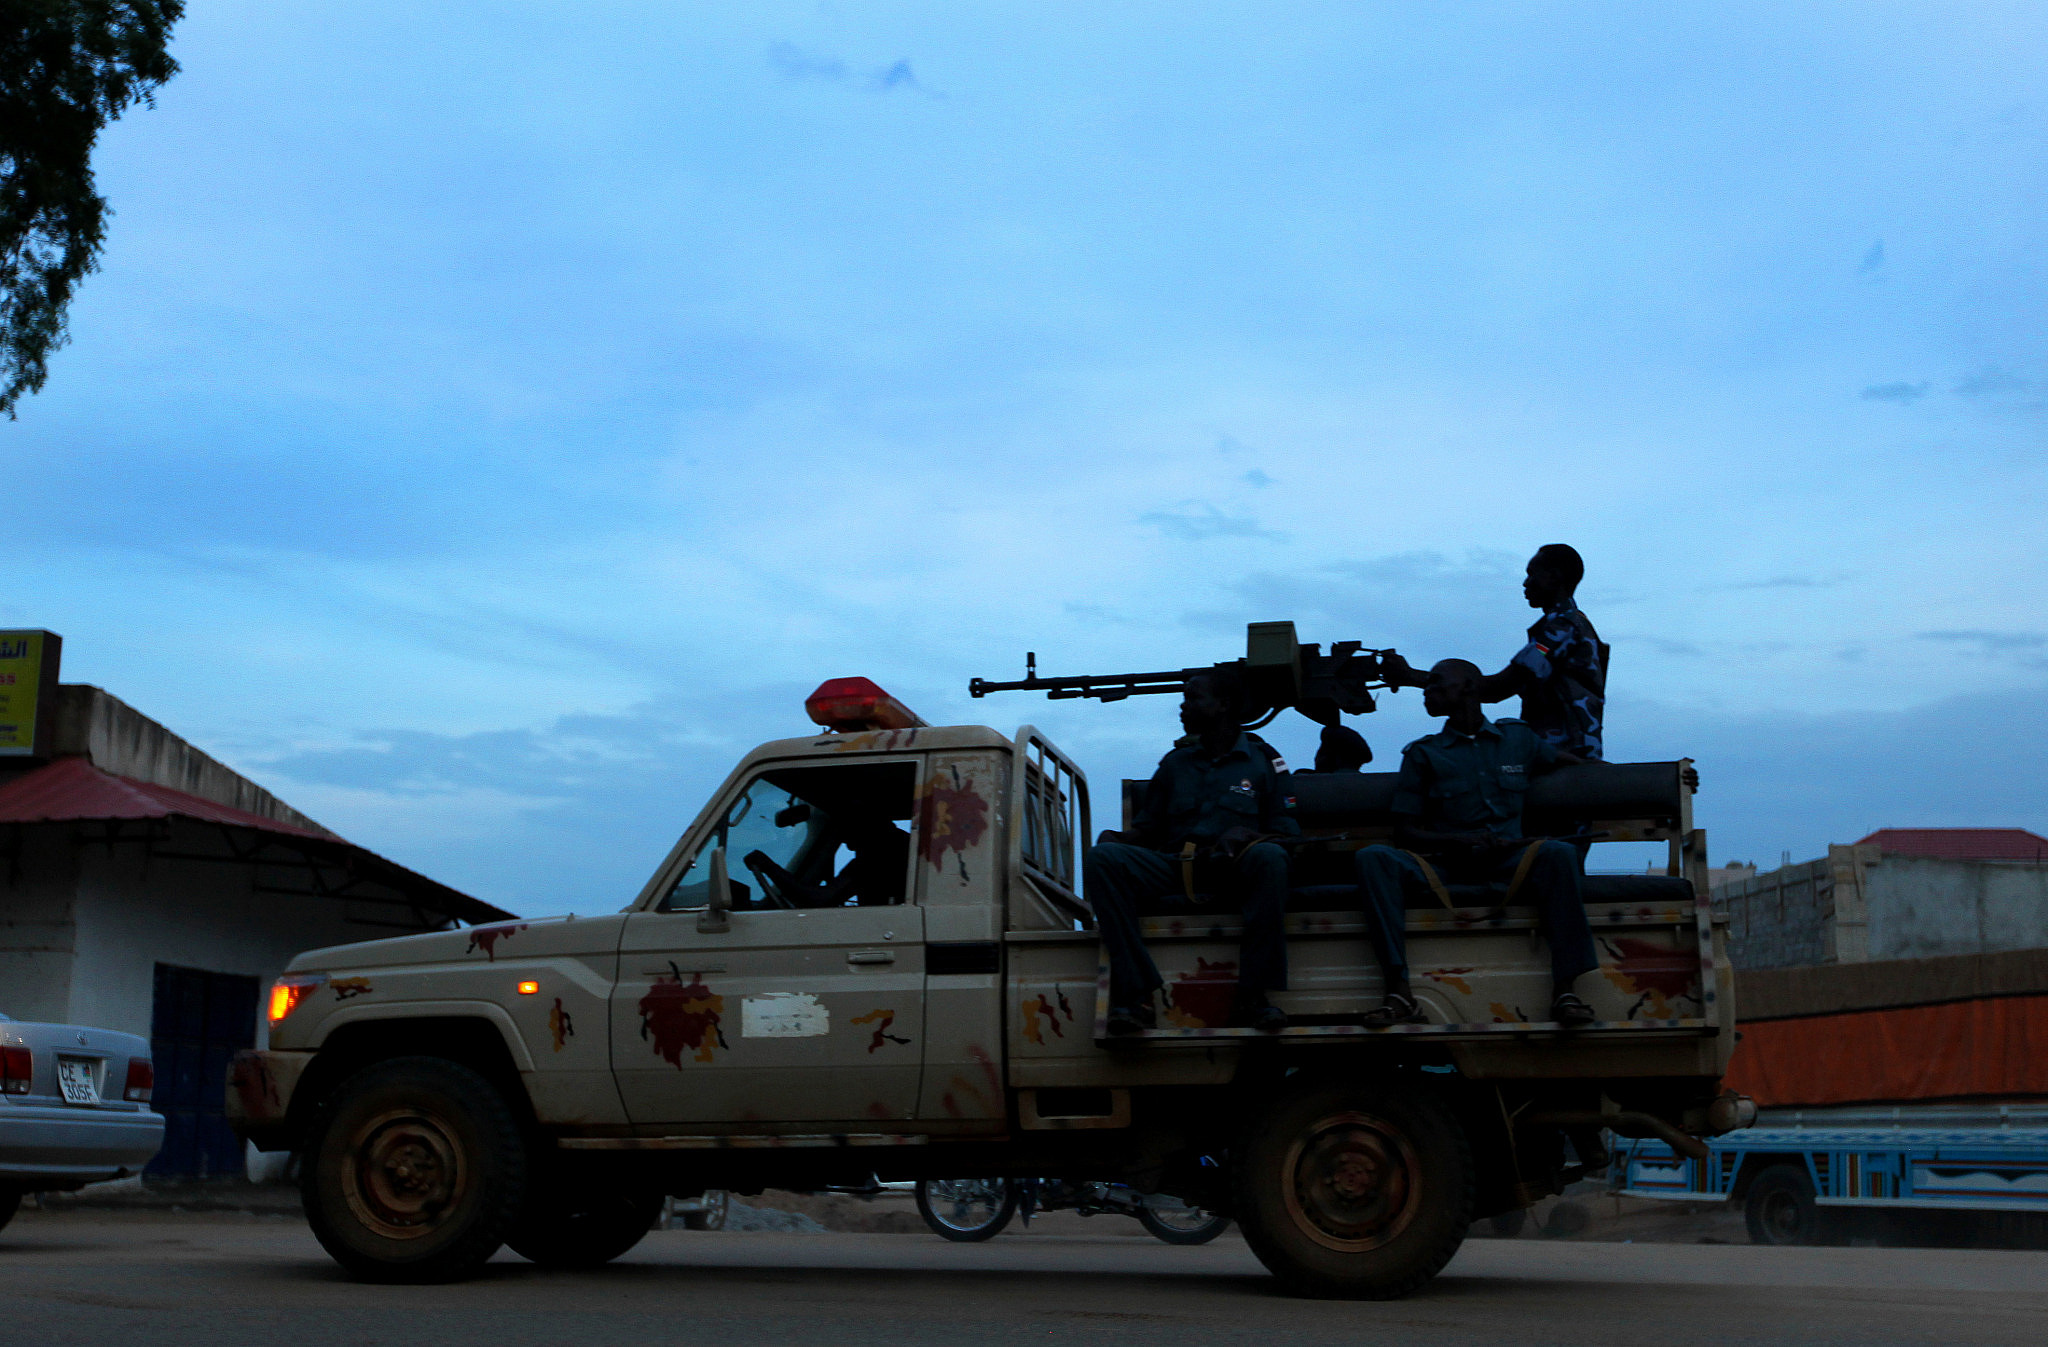 Sudanese soldiers seen patrolling the streets of Juba, the capital of the Republic of South Sudan, on August 20, 2011. (Moshe Shai/Flash90)